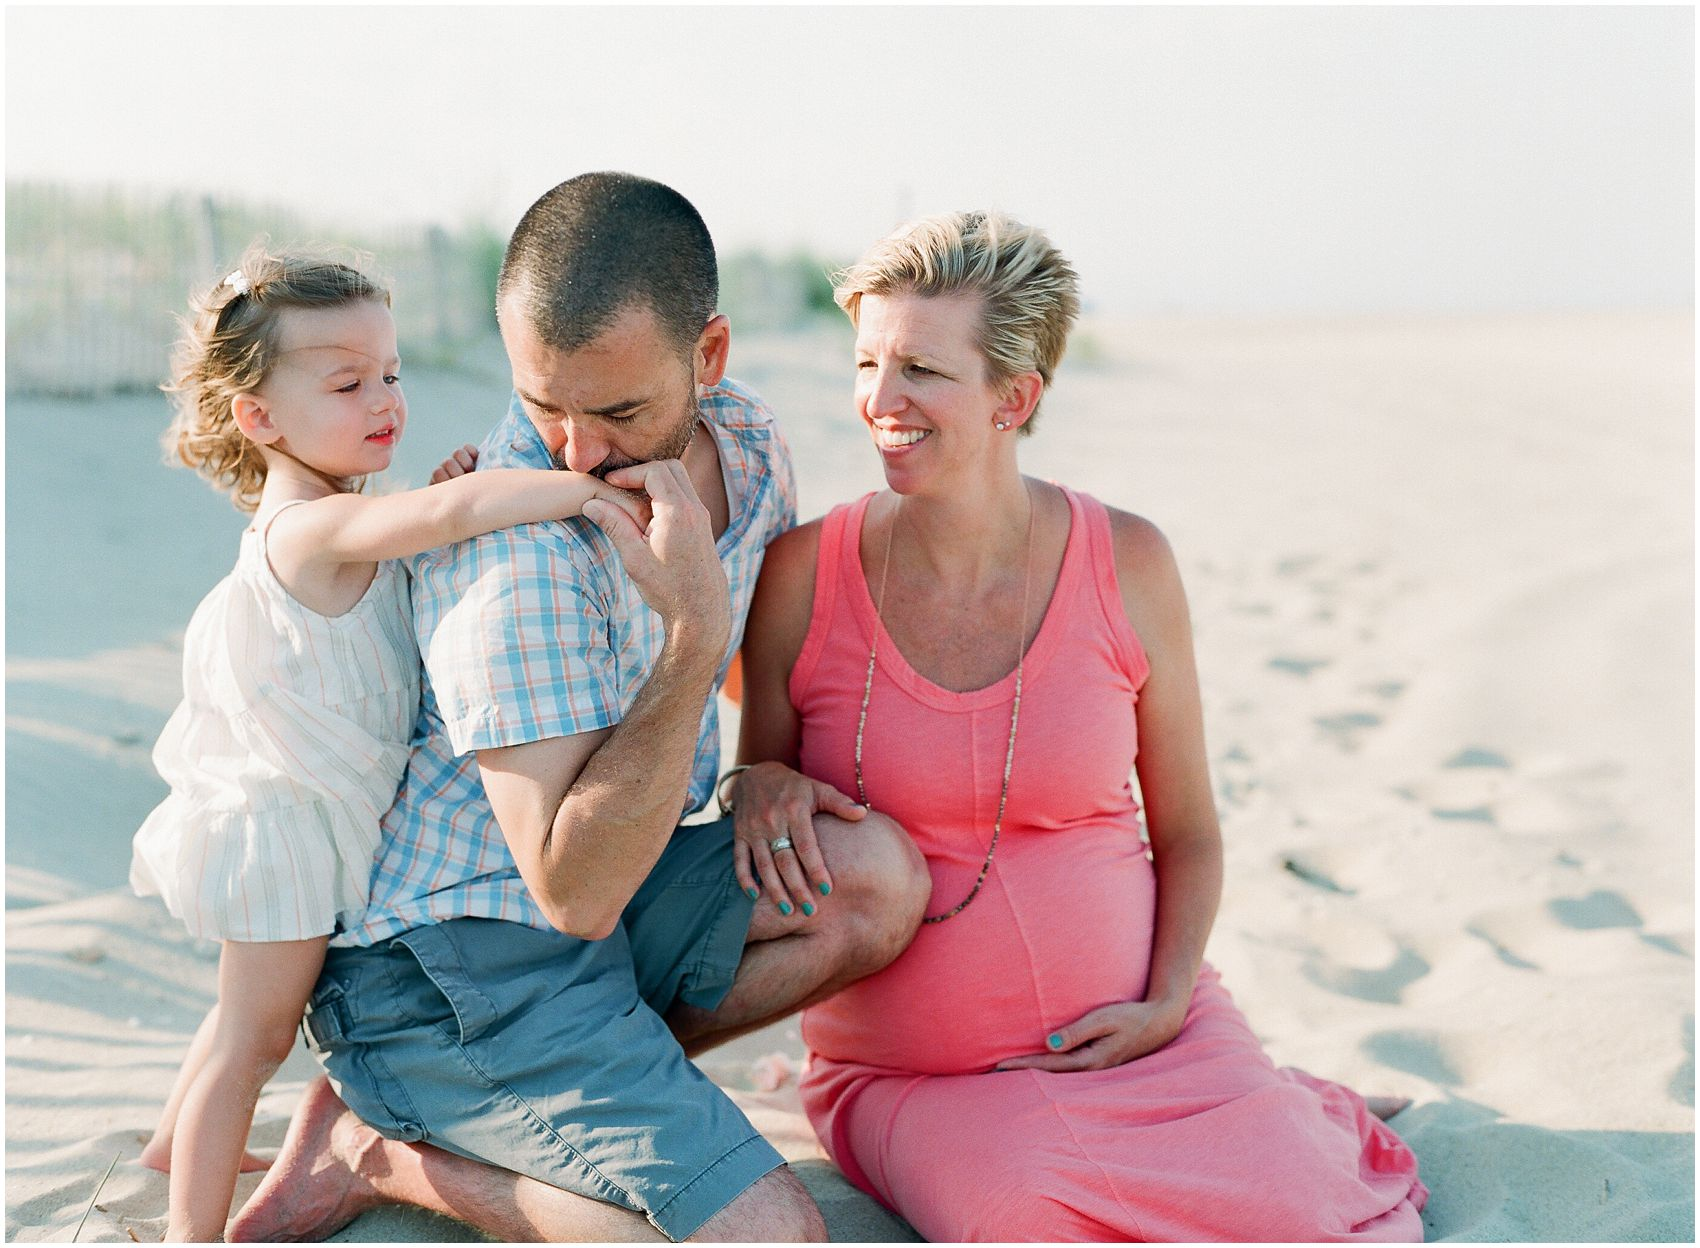 dad kissing his daughter at the beach and pregnant mom looking adoringly at them